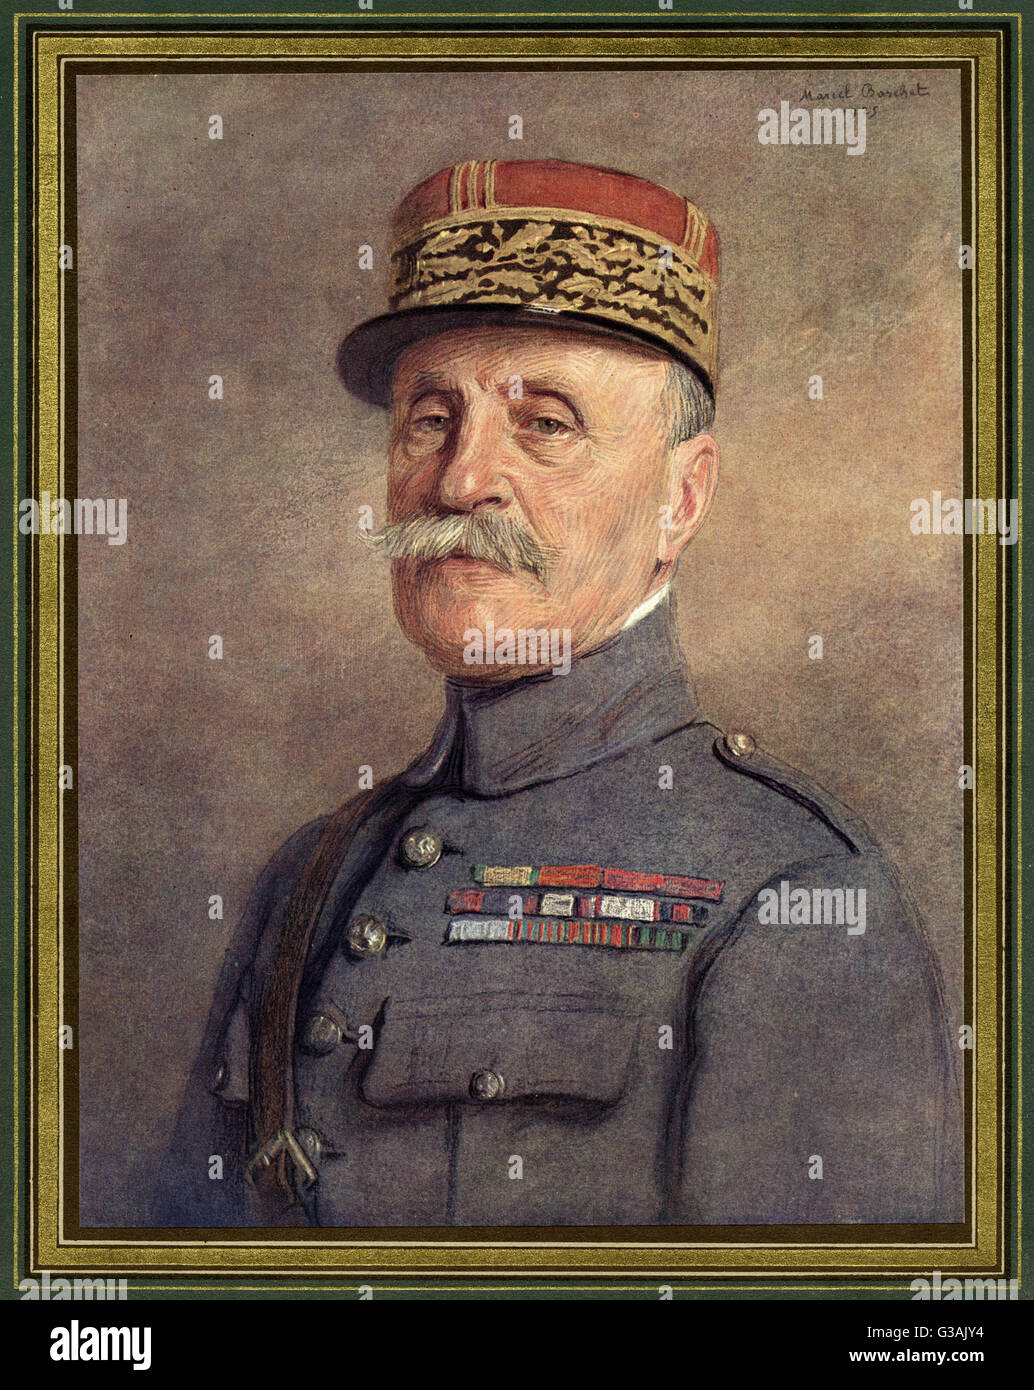 Philippe Petain (1856  1951), French general and politician.     Date: 1925 - Stock Image